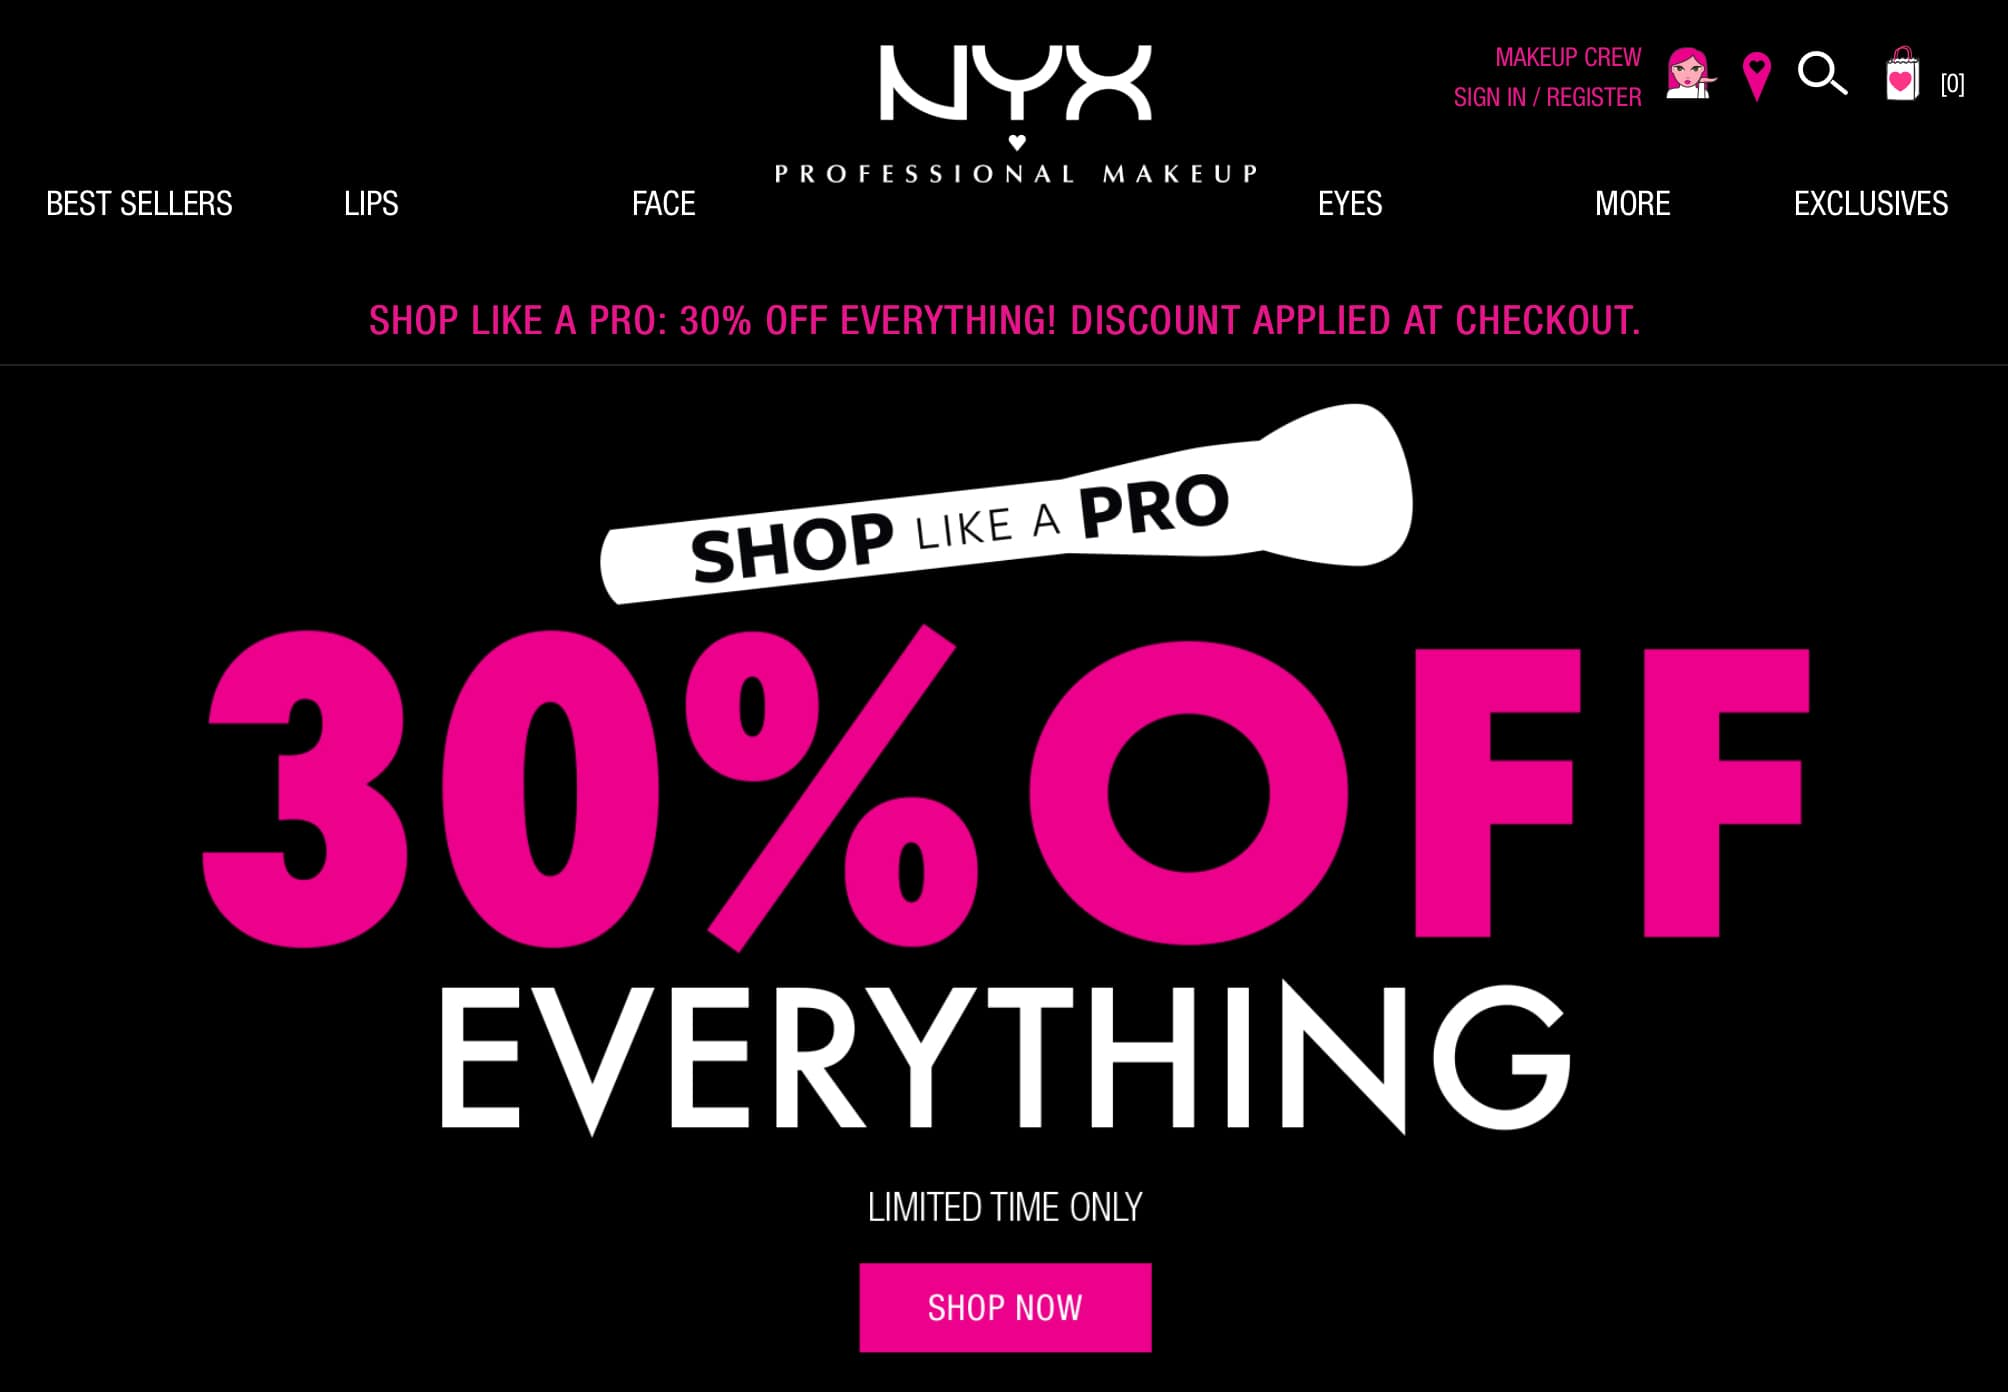 30% off everything including sale items at NYX.com